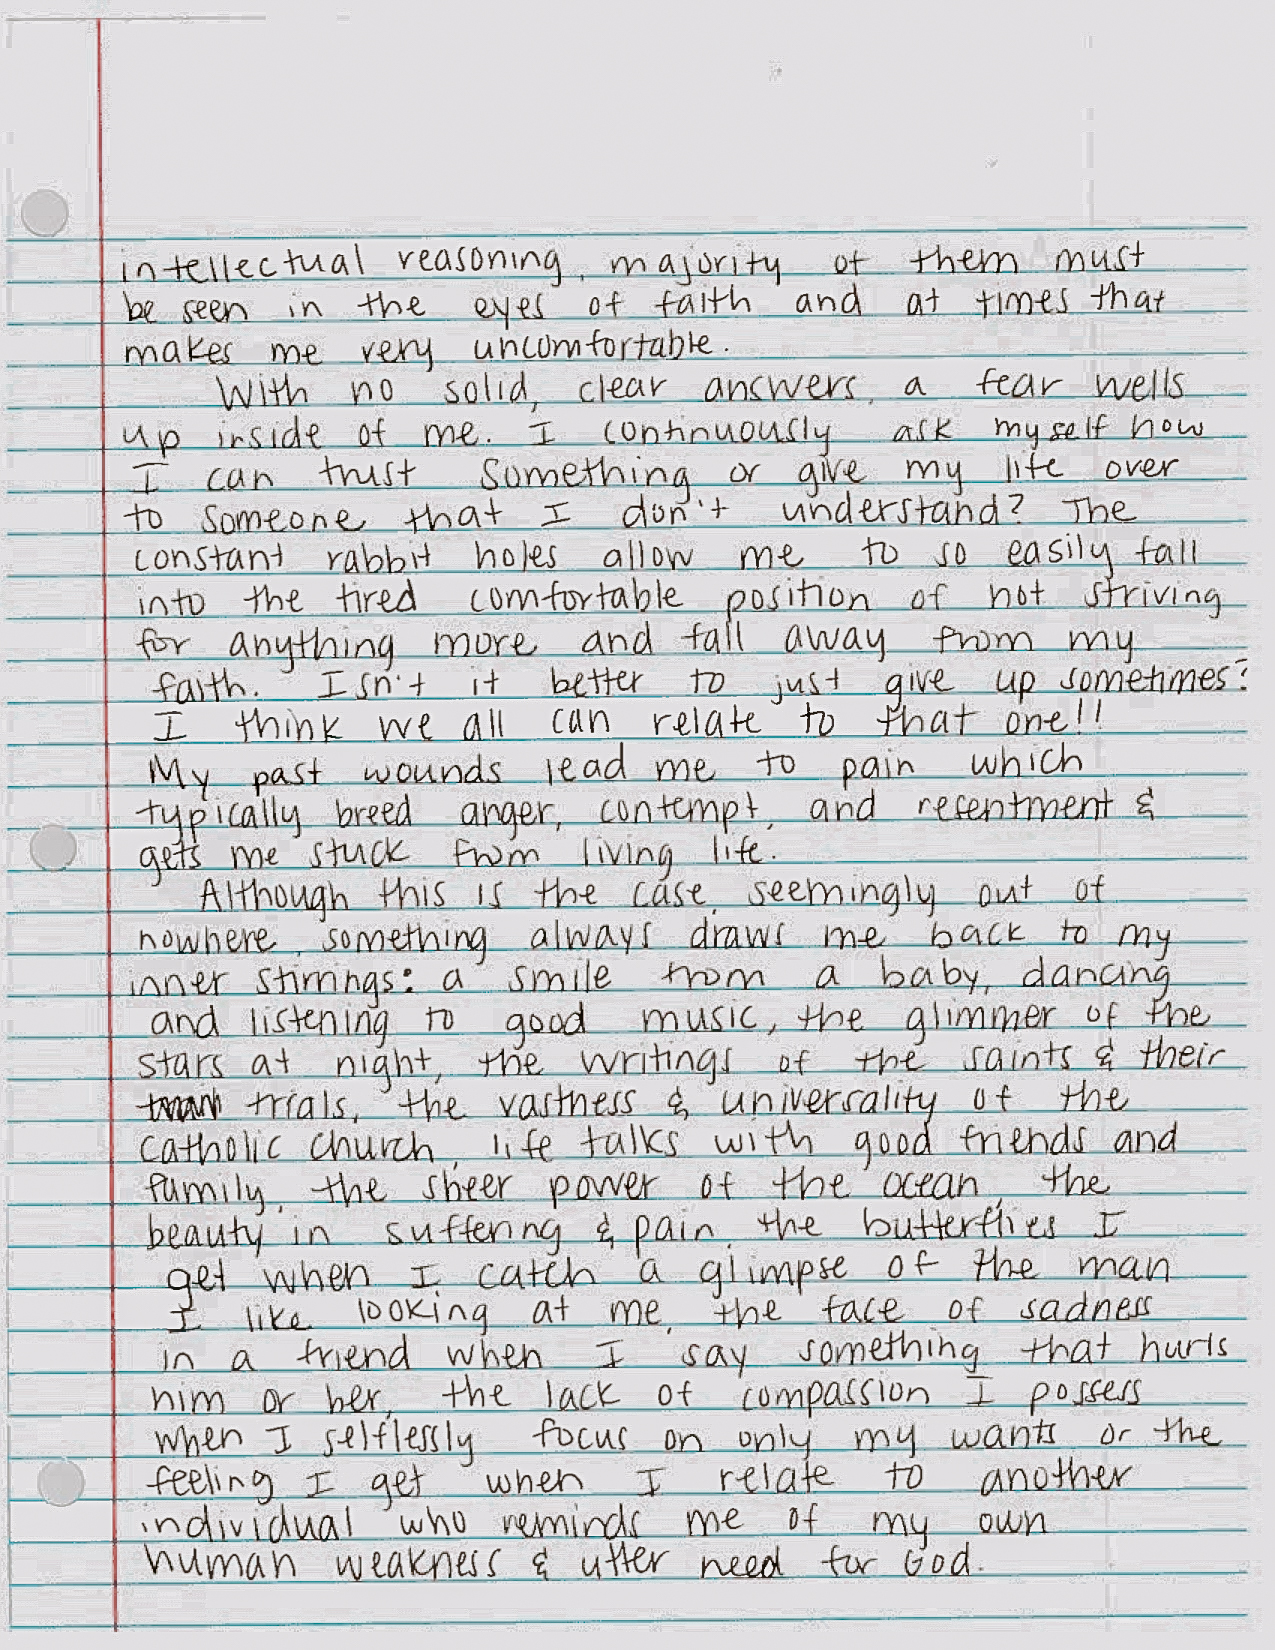 The-Catholic-Woman Letters-36.jpg